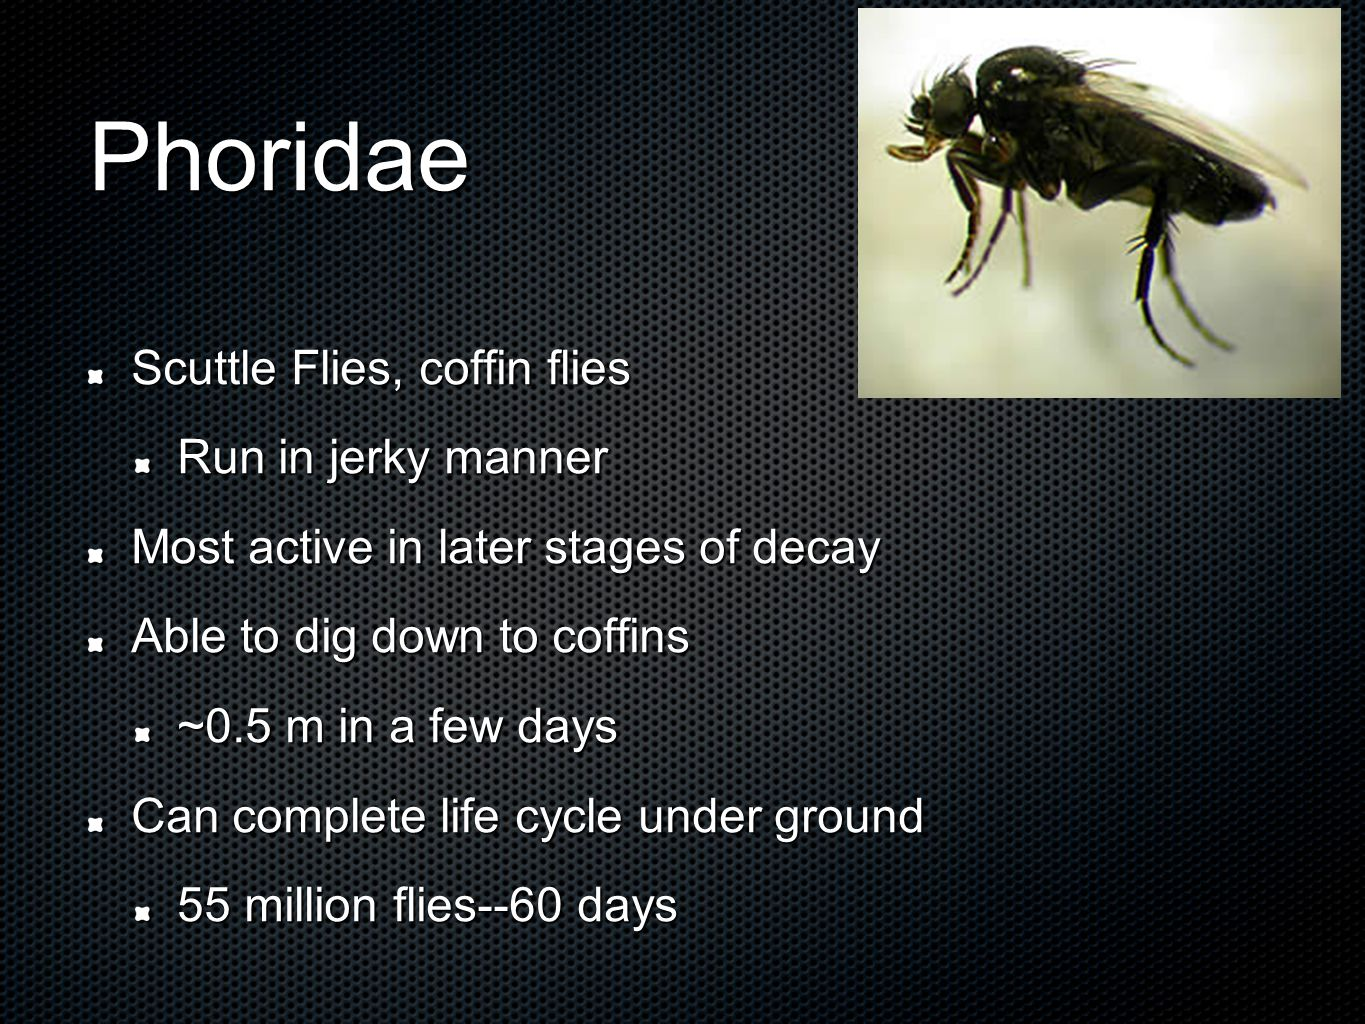 Phoridae Scuttle Flies, coffin flies Run in jerky manner Most active in later stages of decay Able to dig down to coffins ~0.5 m in a few days Can complete life cycle under ground 55 million flies--60 days